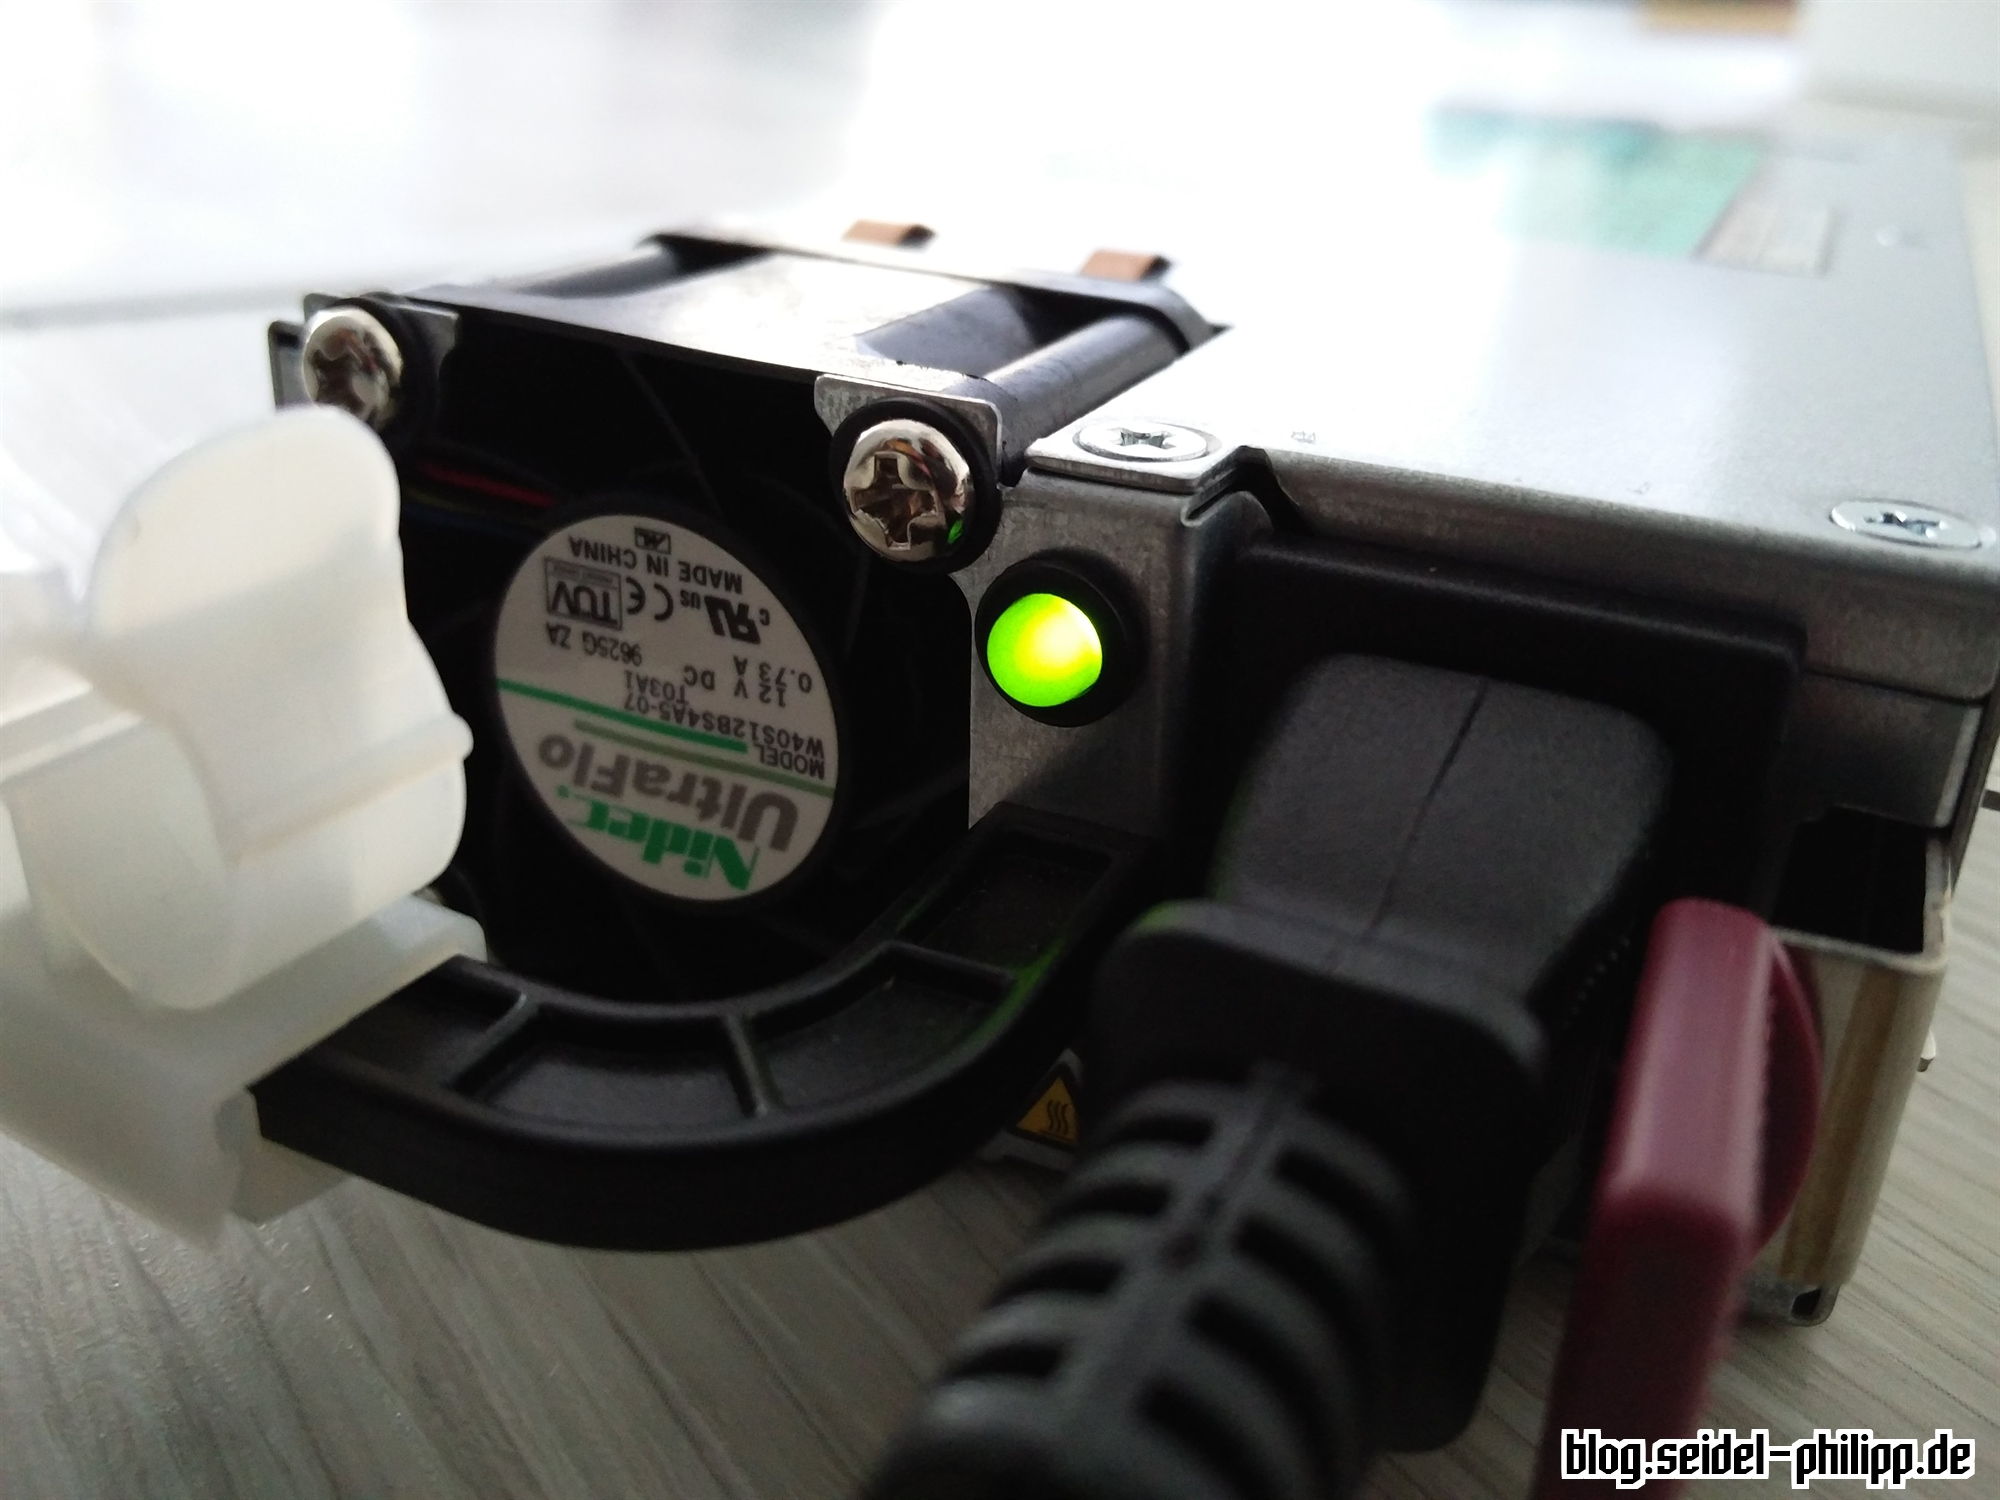 Hp Dps 1200fb Power Supply Hack For Charging Lipos Led Voltmeter 5012 Psu Batt Chargers Electronic Components If Everything Is Correctly Soldered You Can Plug The Into Socket First Time When Green Lights Up